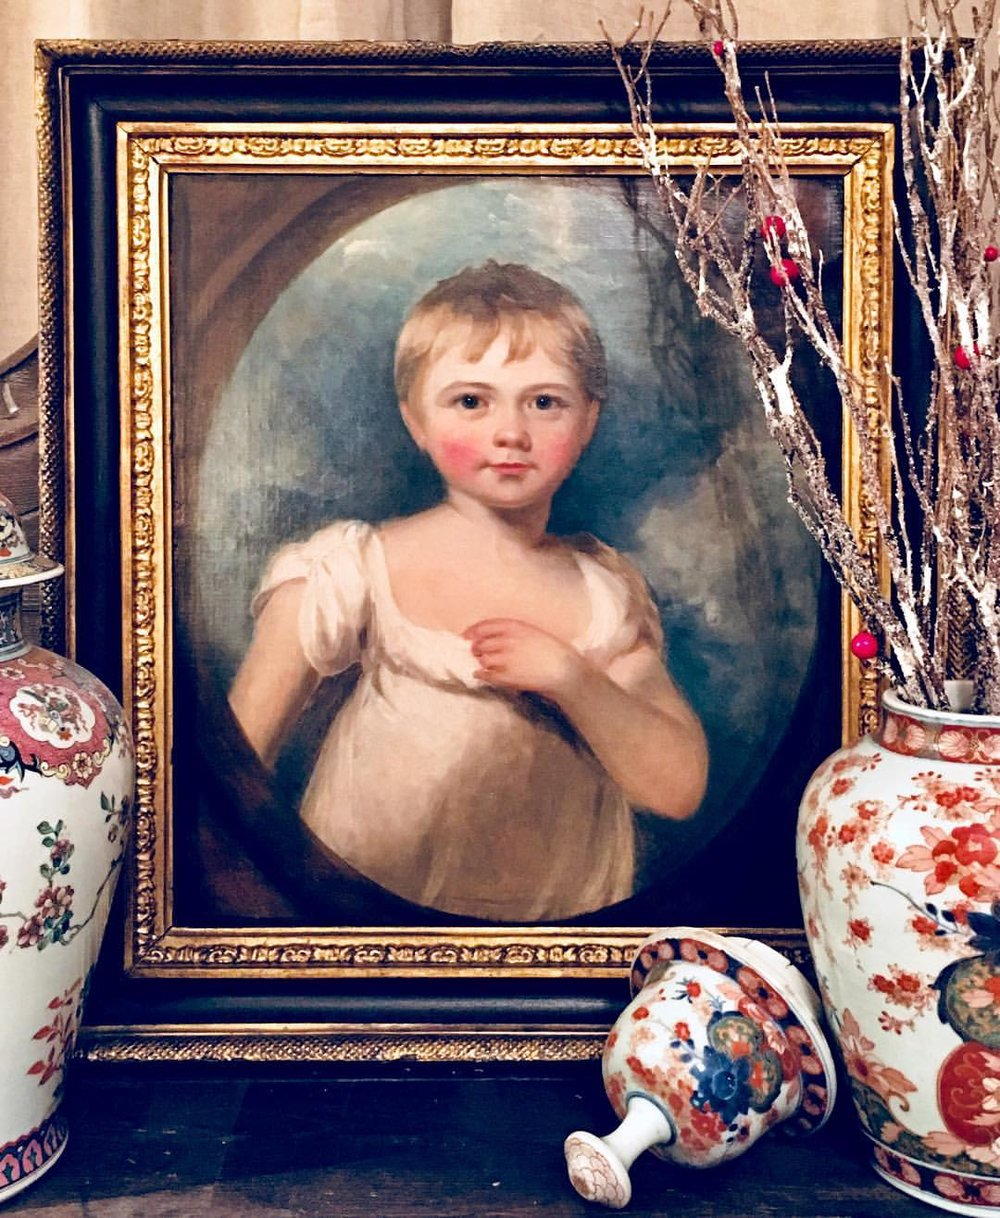 Early-19th-century painting of a young boy attributed to Martin Archer Shee, £4,250 (now sold)